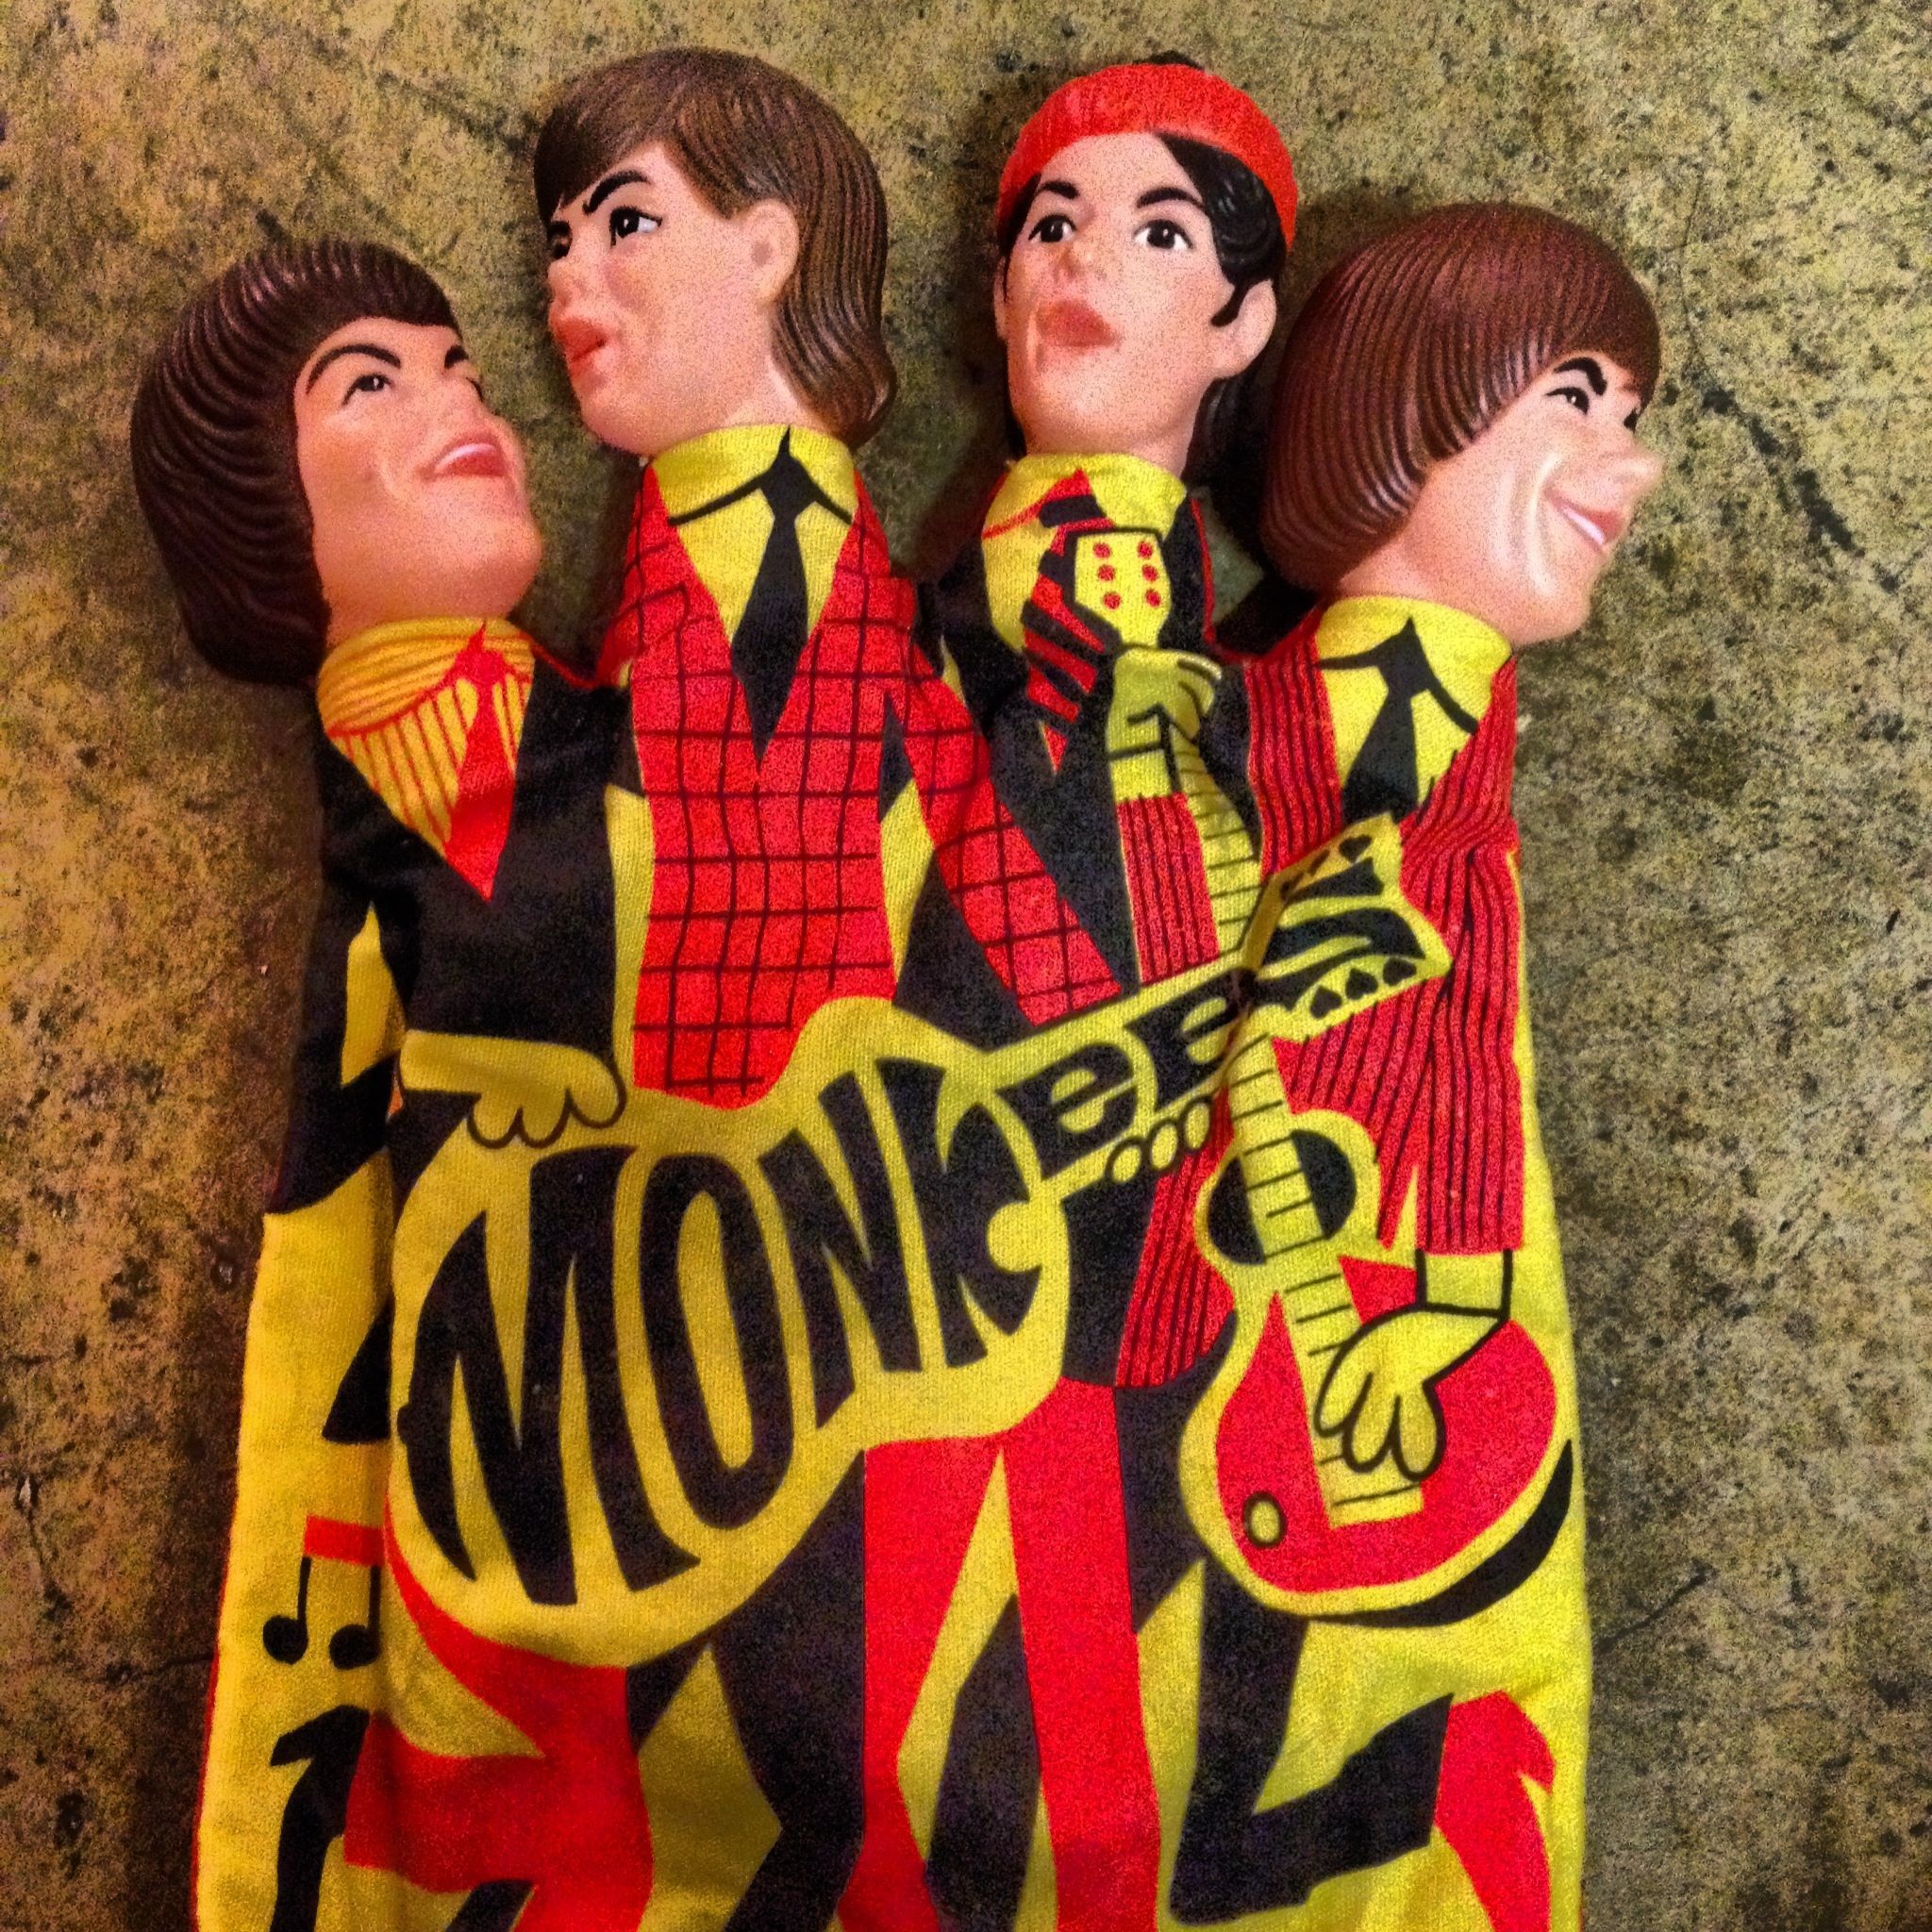 Monkees Hand Puppet Dolly Python